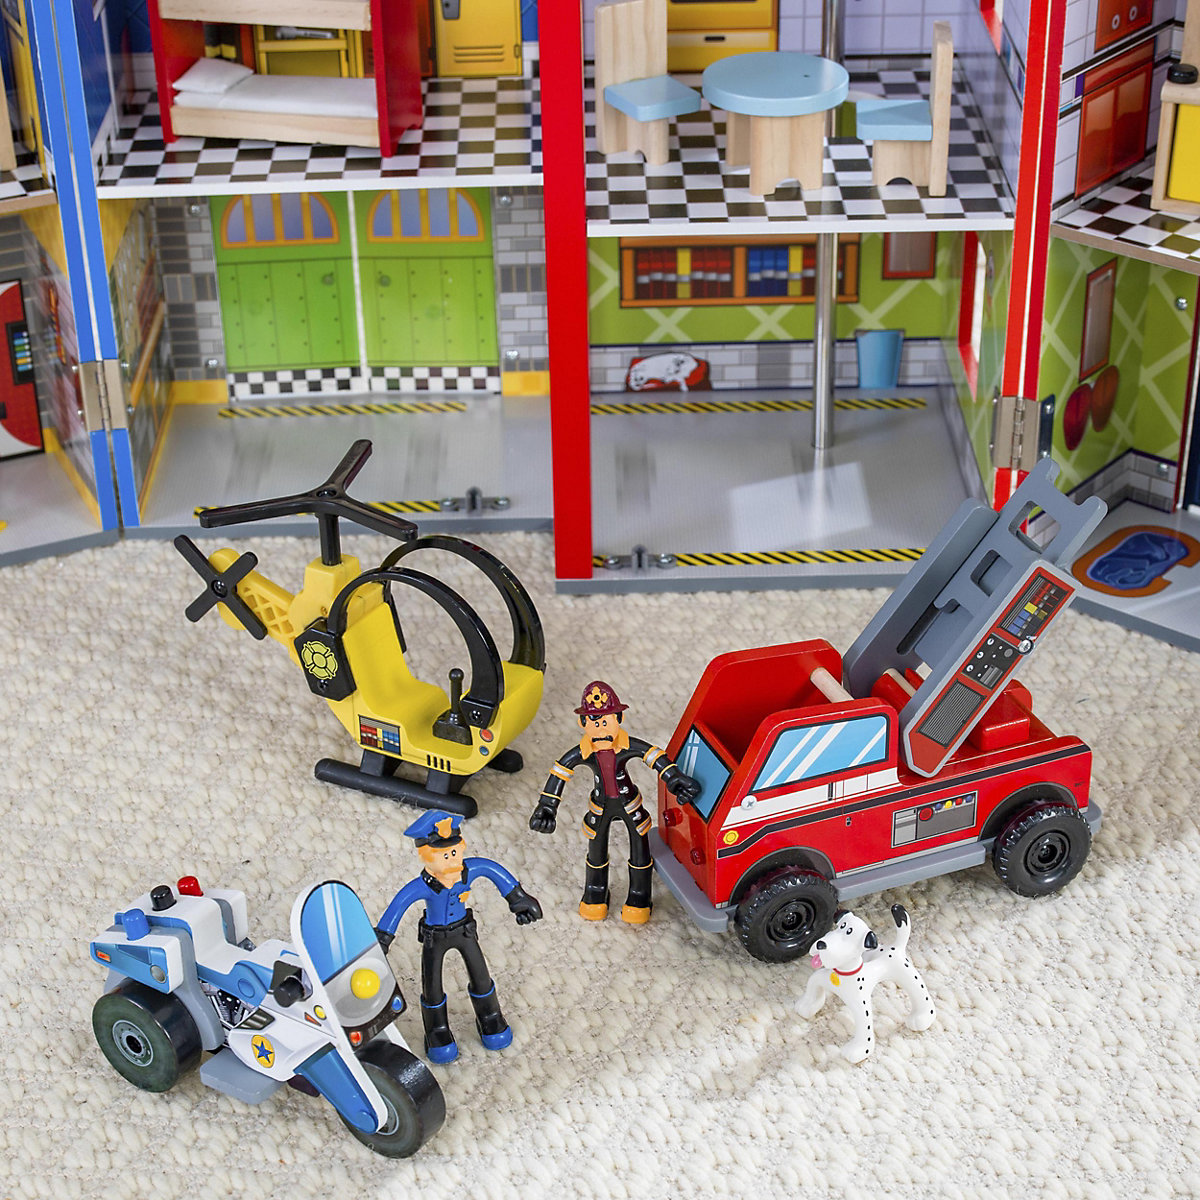 helden des alltags spielset aus holz kidkraft mytoys. Black Bedroom Furniture Sets. Home Design Ideas